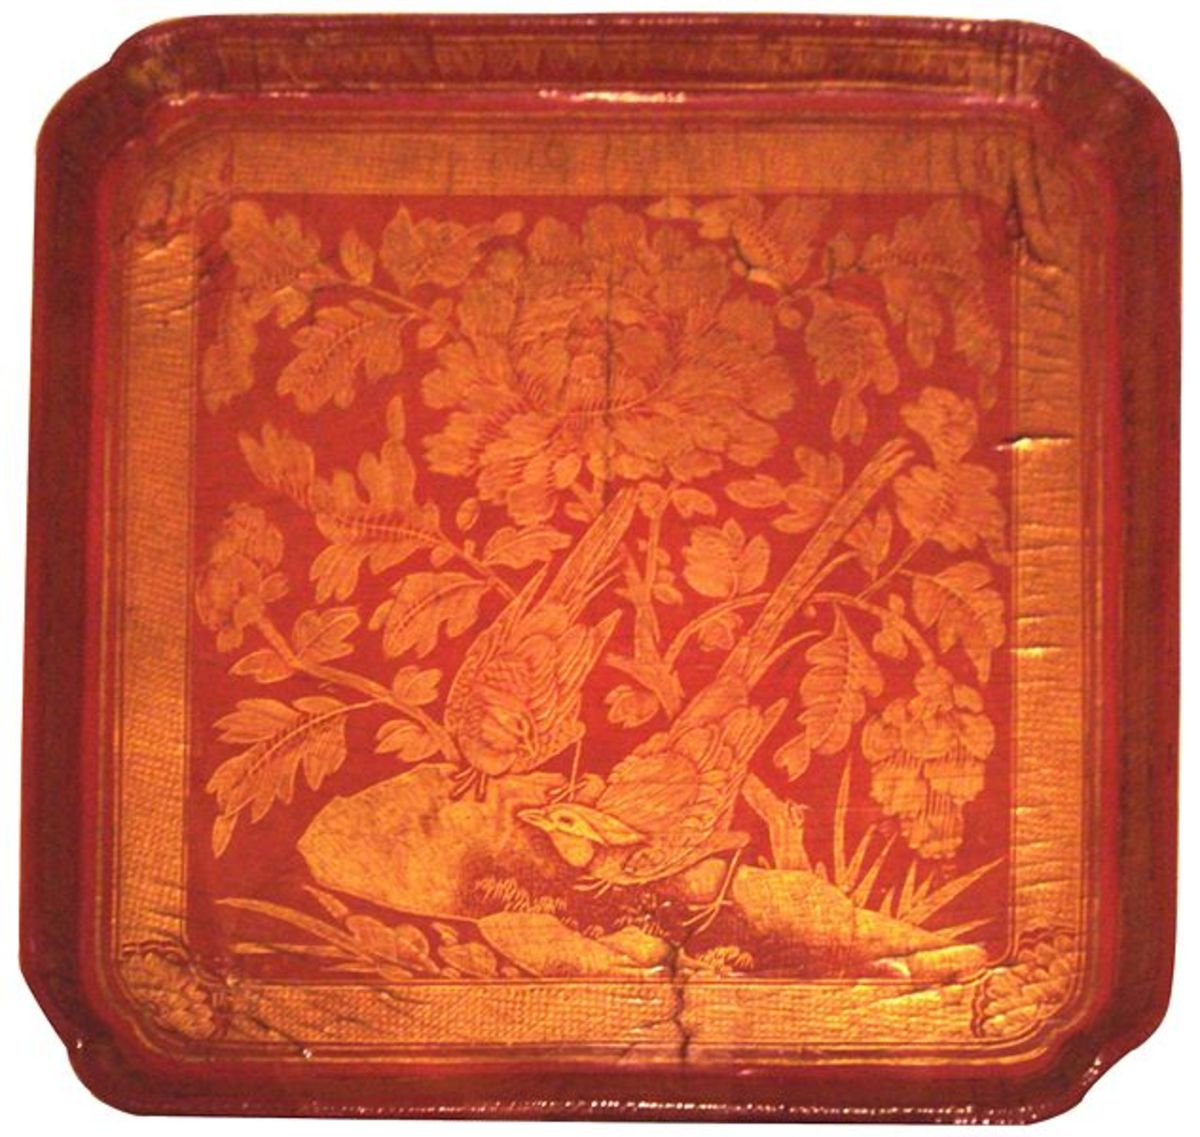 Red lacquer tray with peony images, Song dynasty